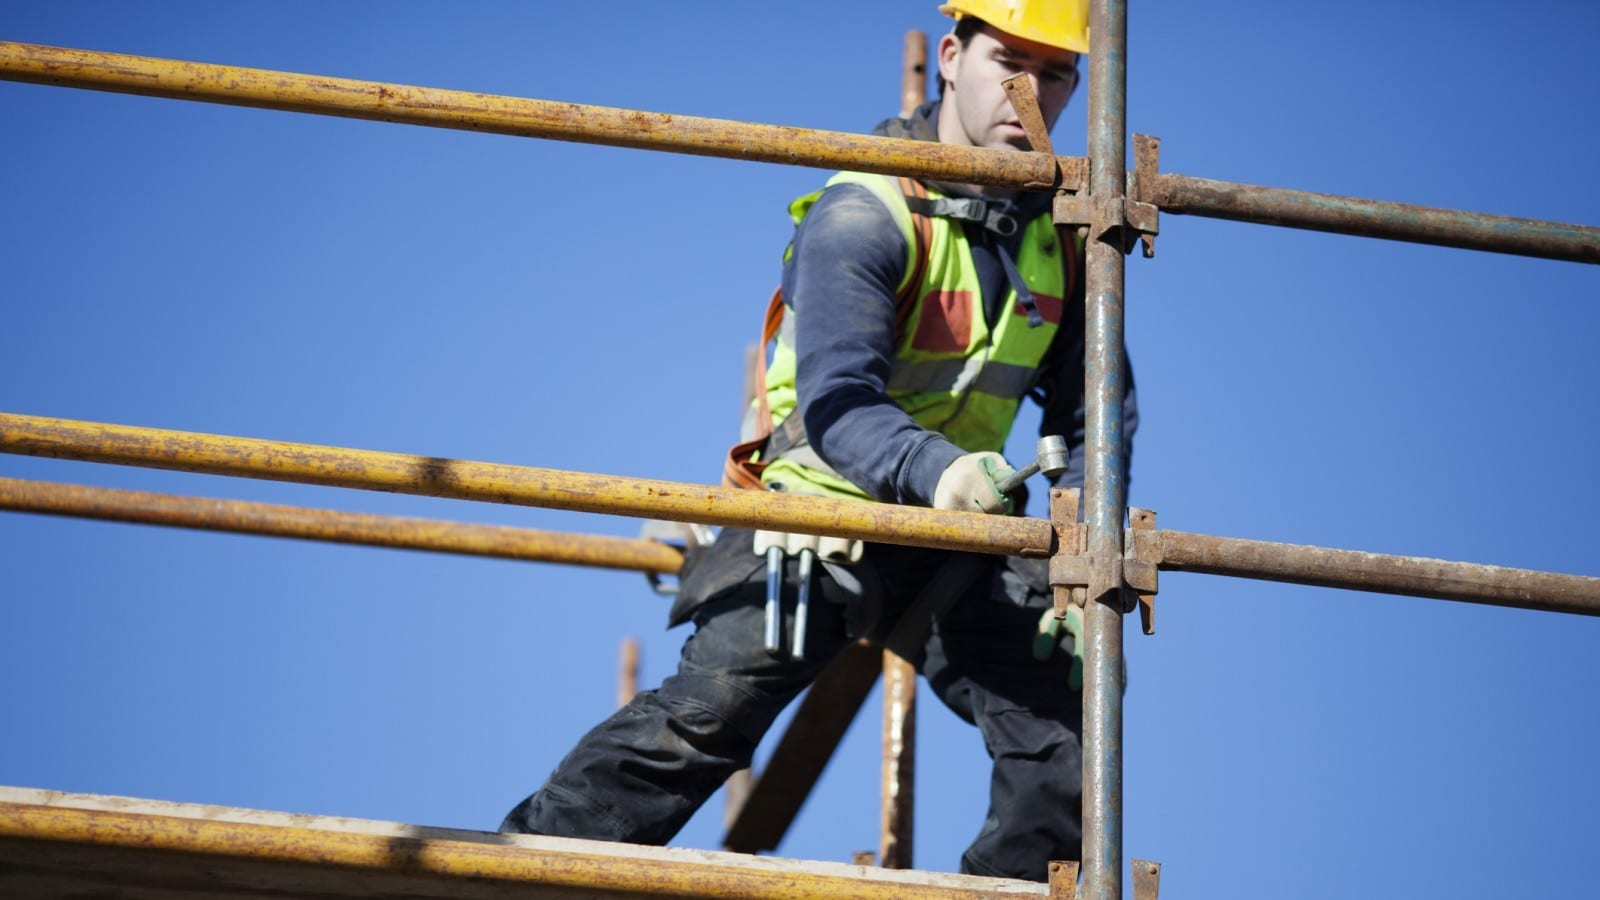 Scaffolding Accident Stock Photo